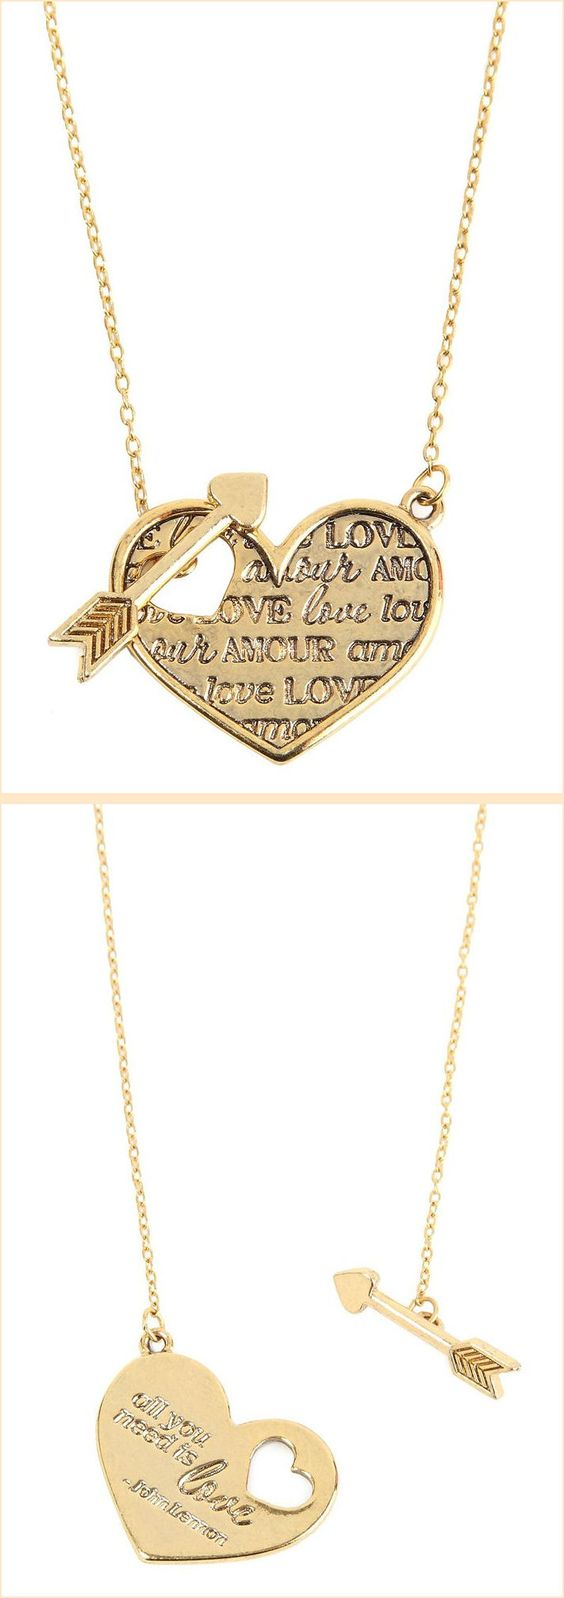 All You Need is Love Necklace ♥